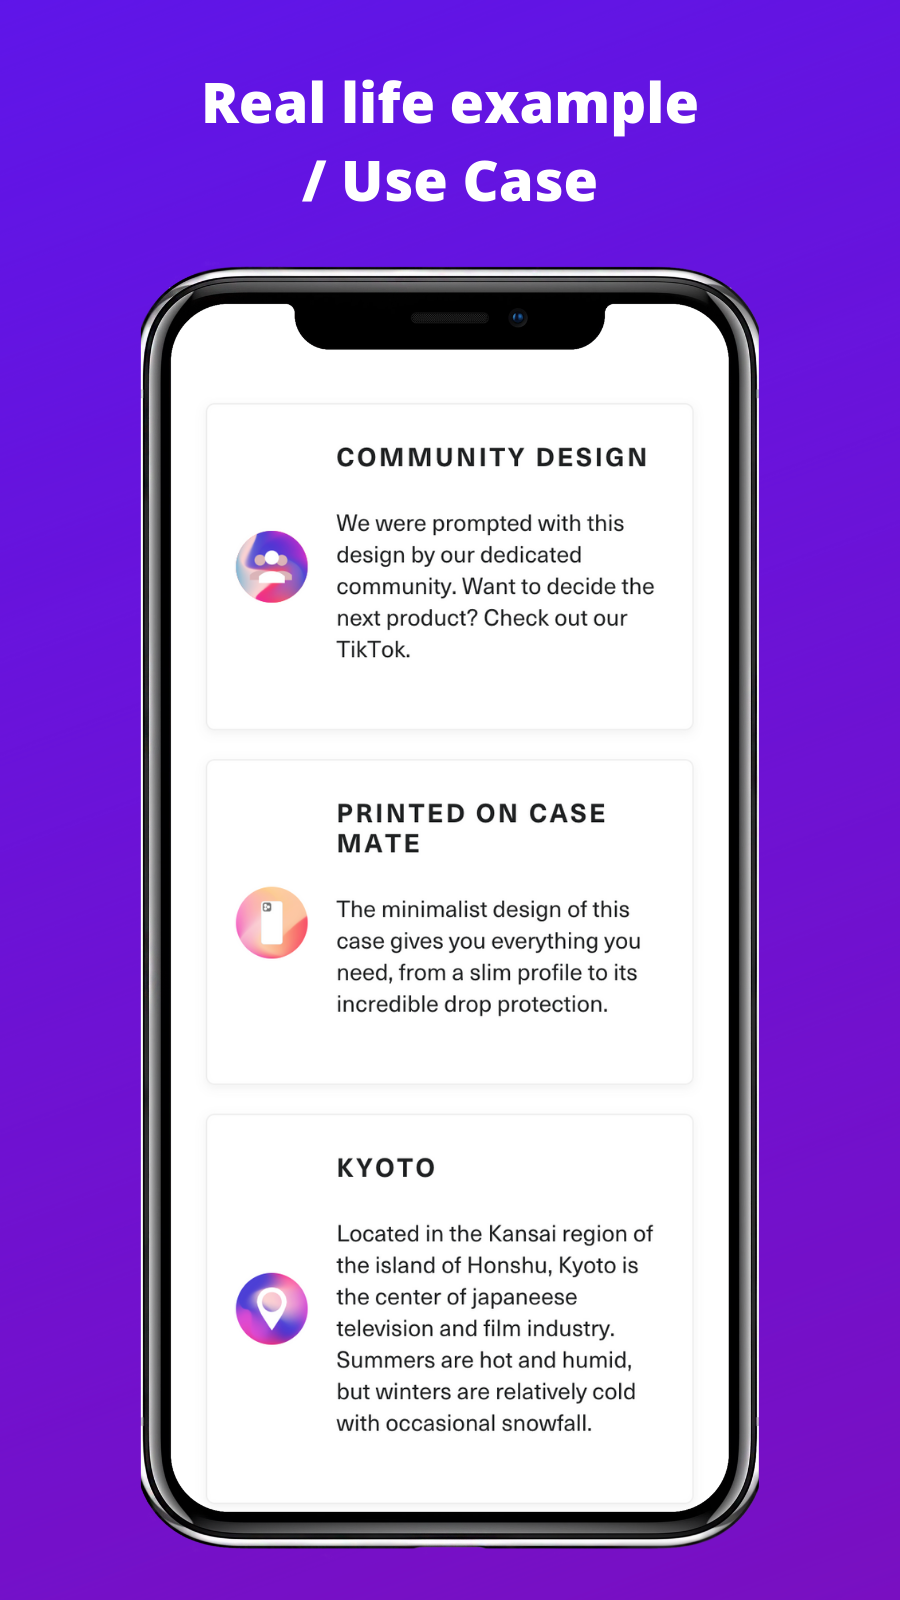 Customer examples / Use cases